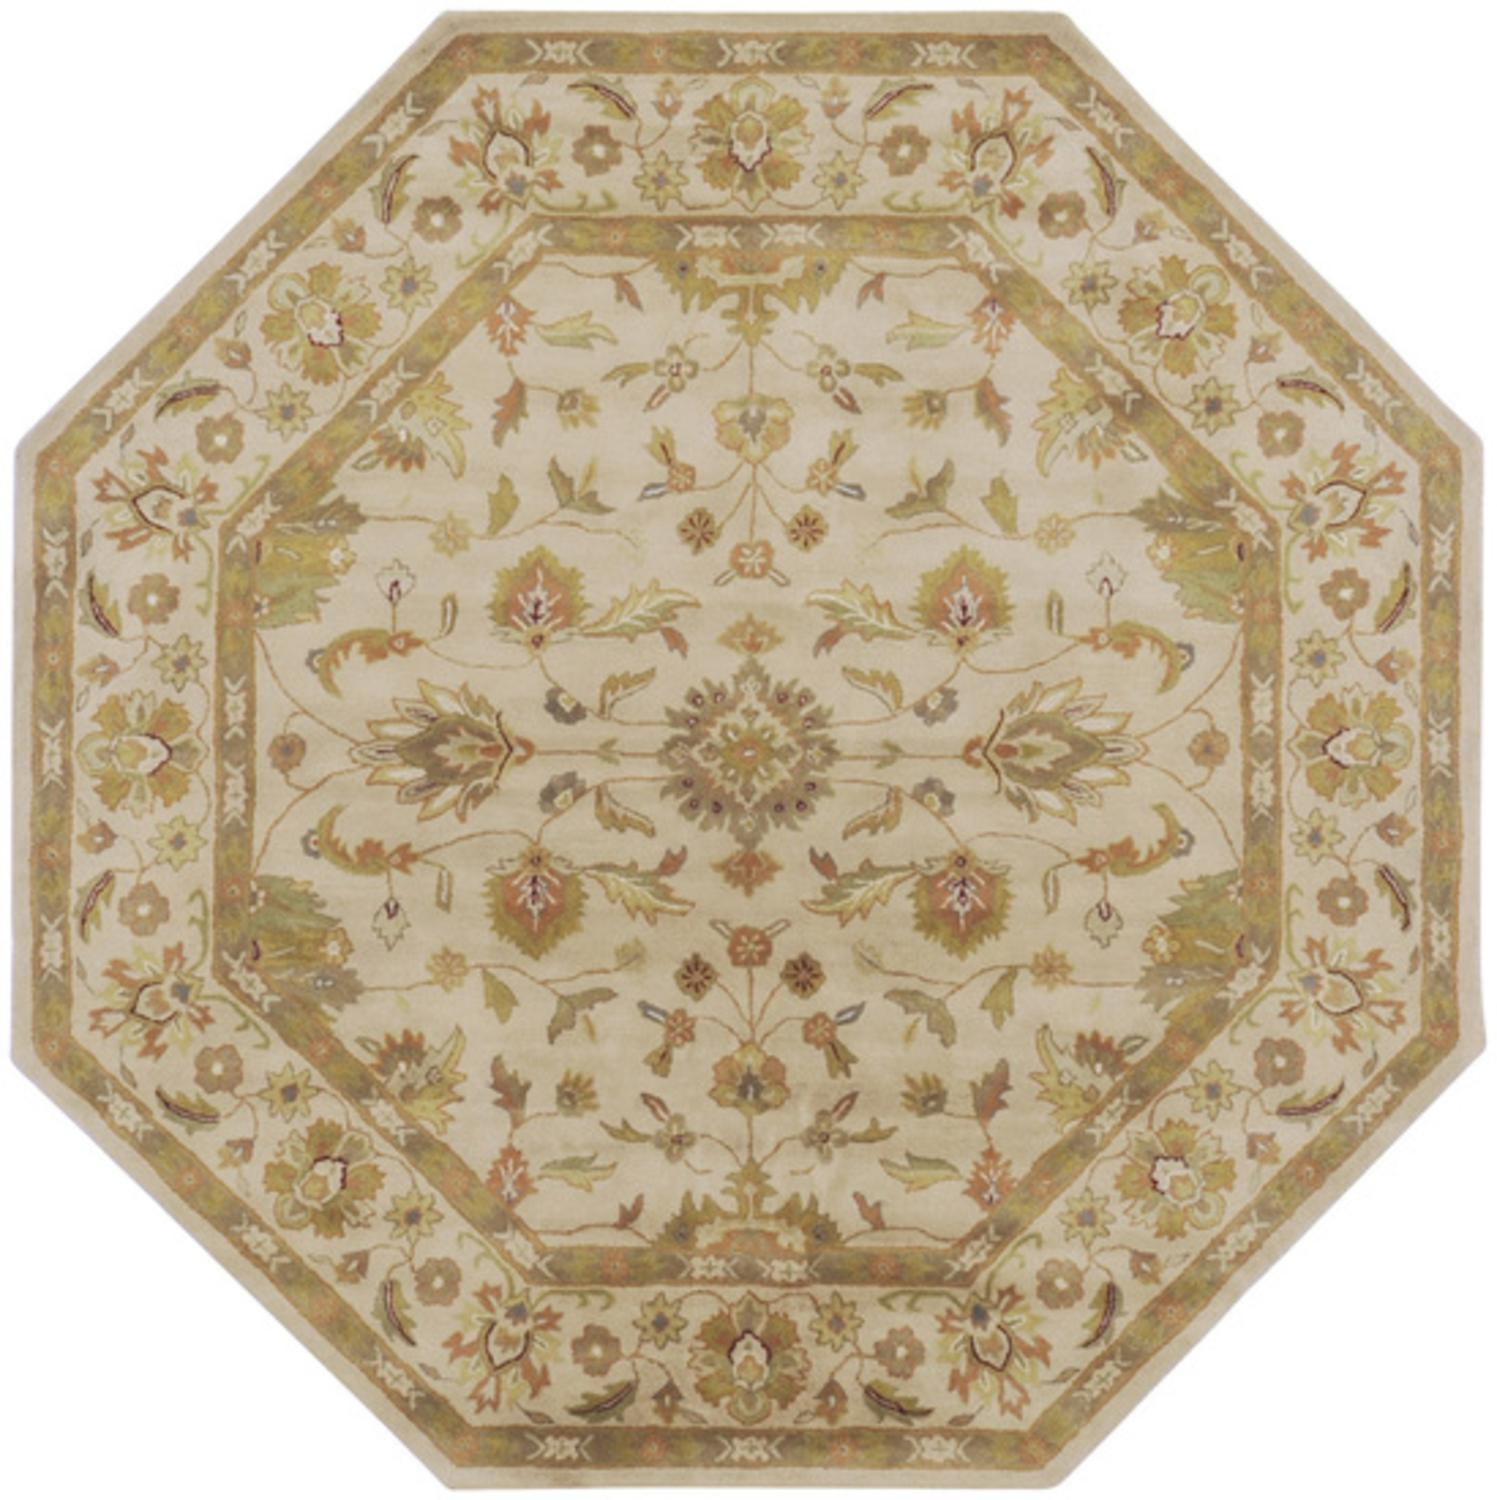 8' Los Cabos Tan and Khaki Green Hand Tufted Wool Octagon Area Throw Rug